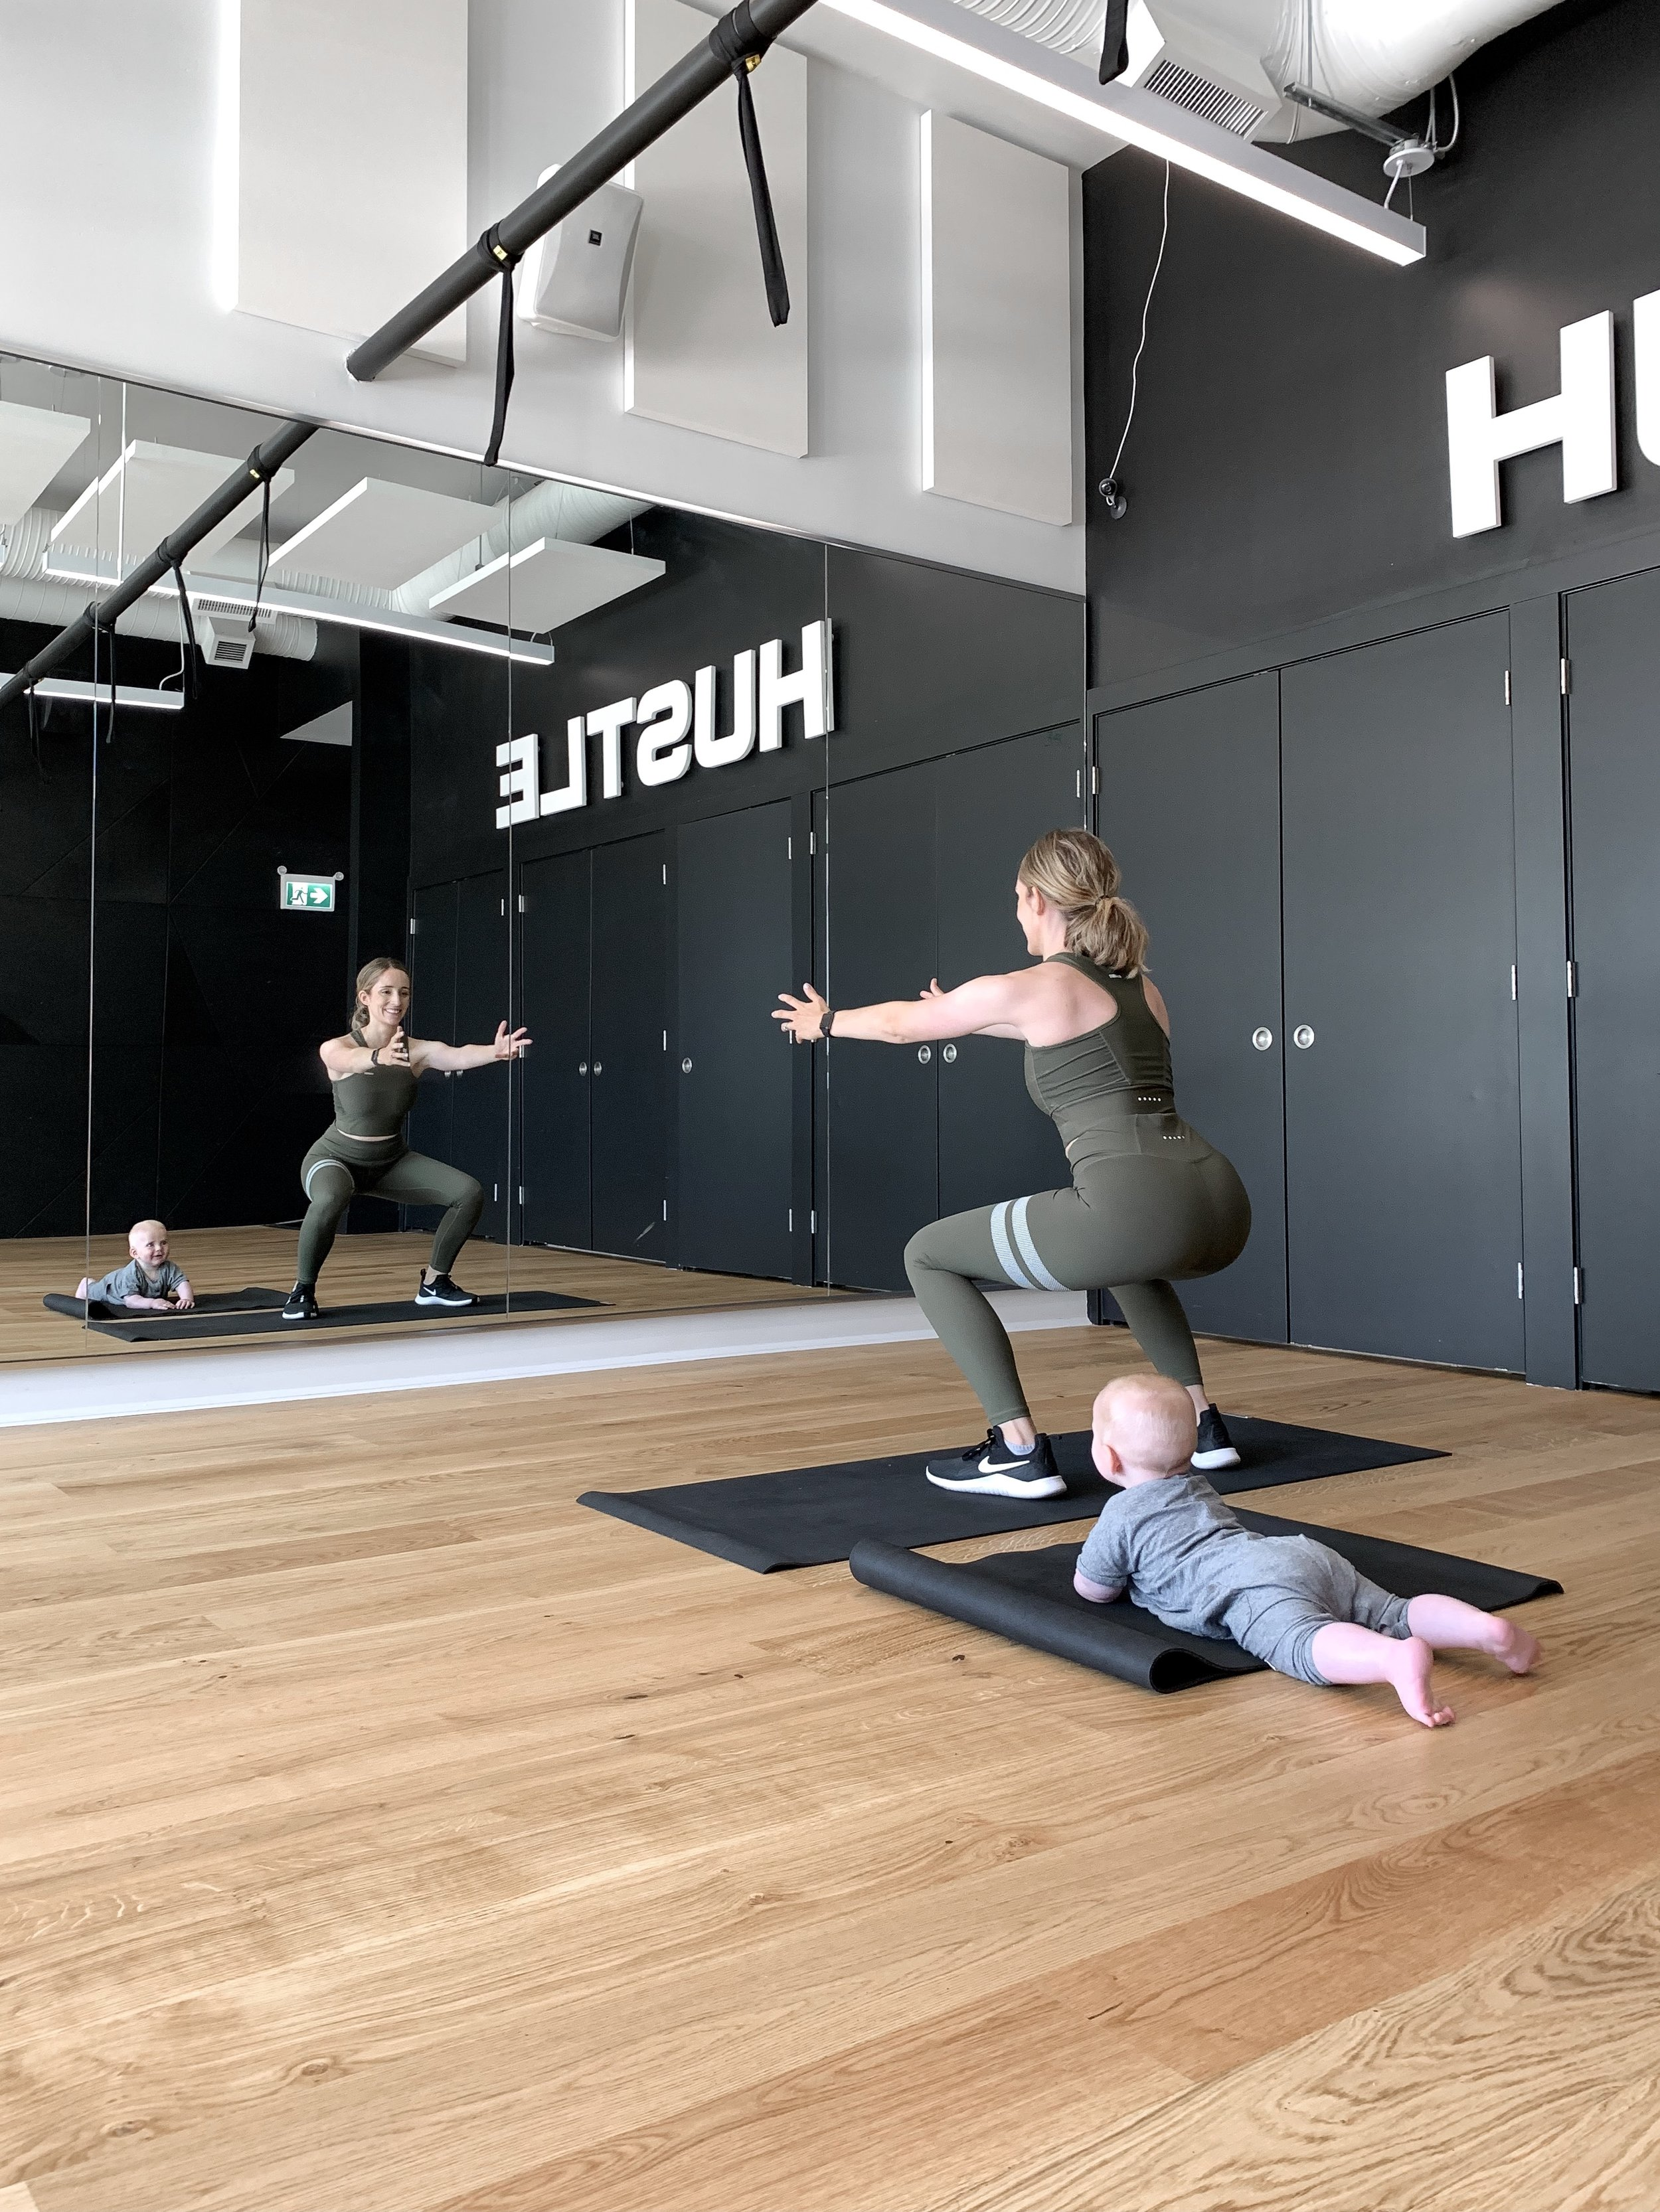 shardayengel-working-out-after-baby07.JPG